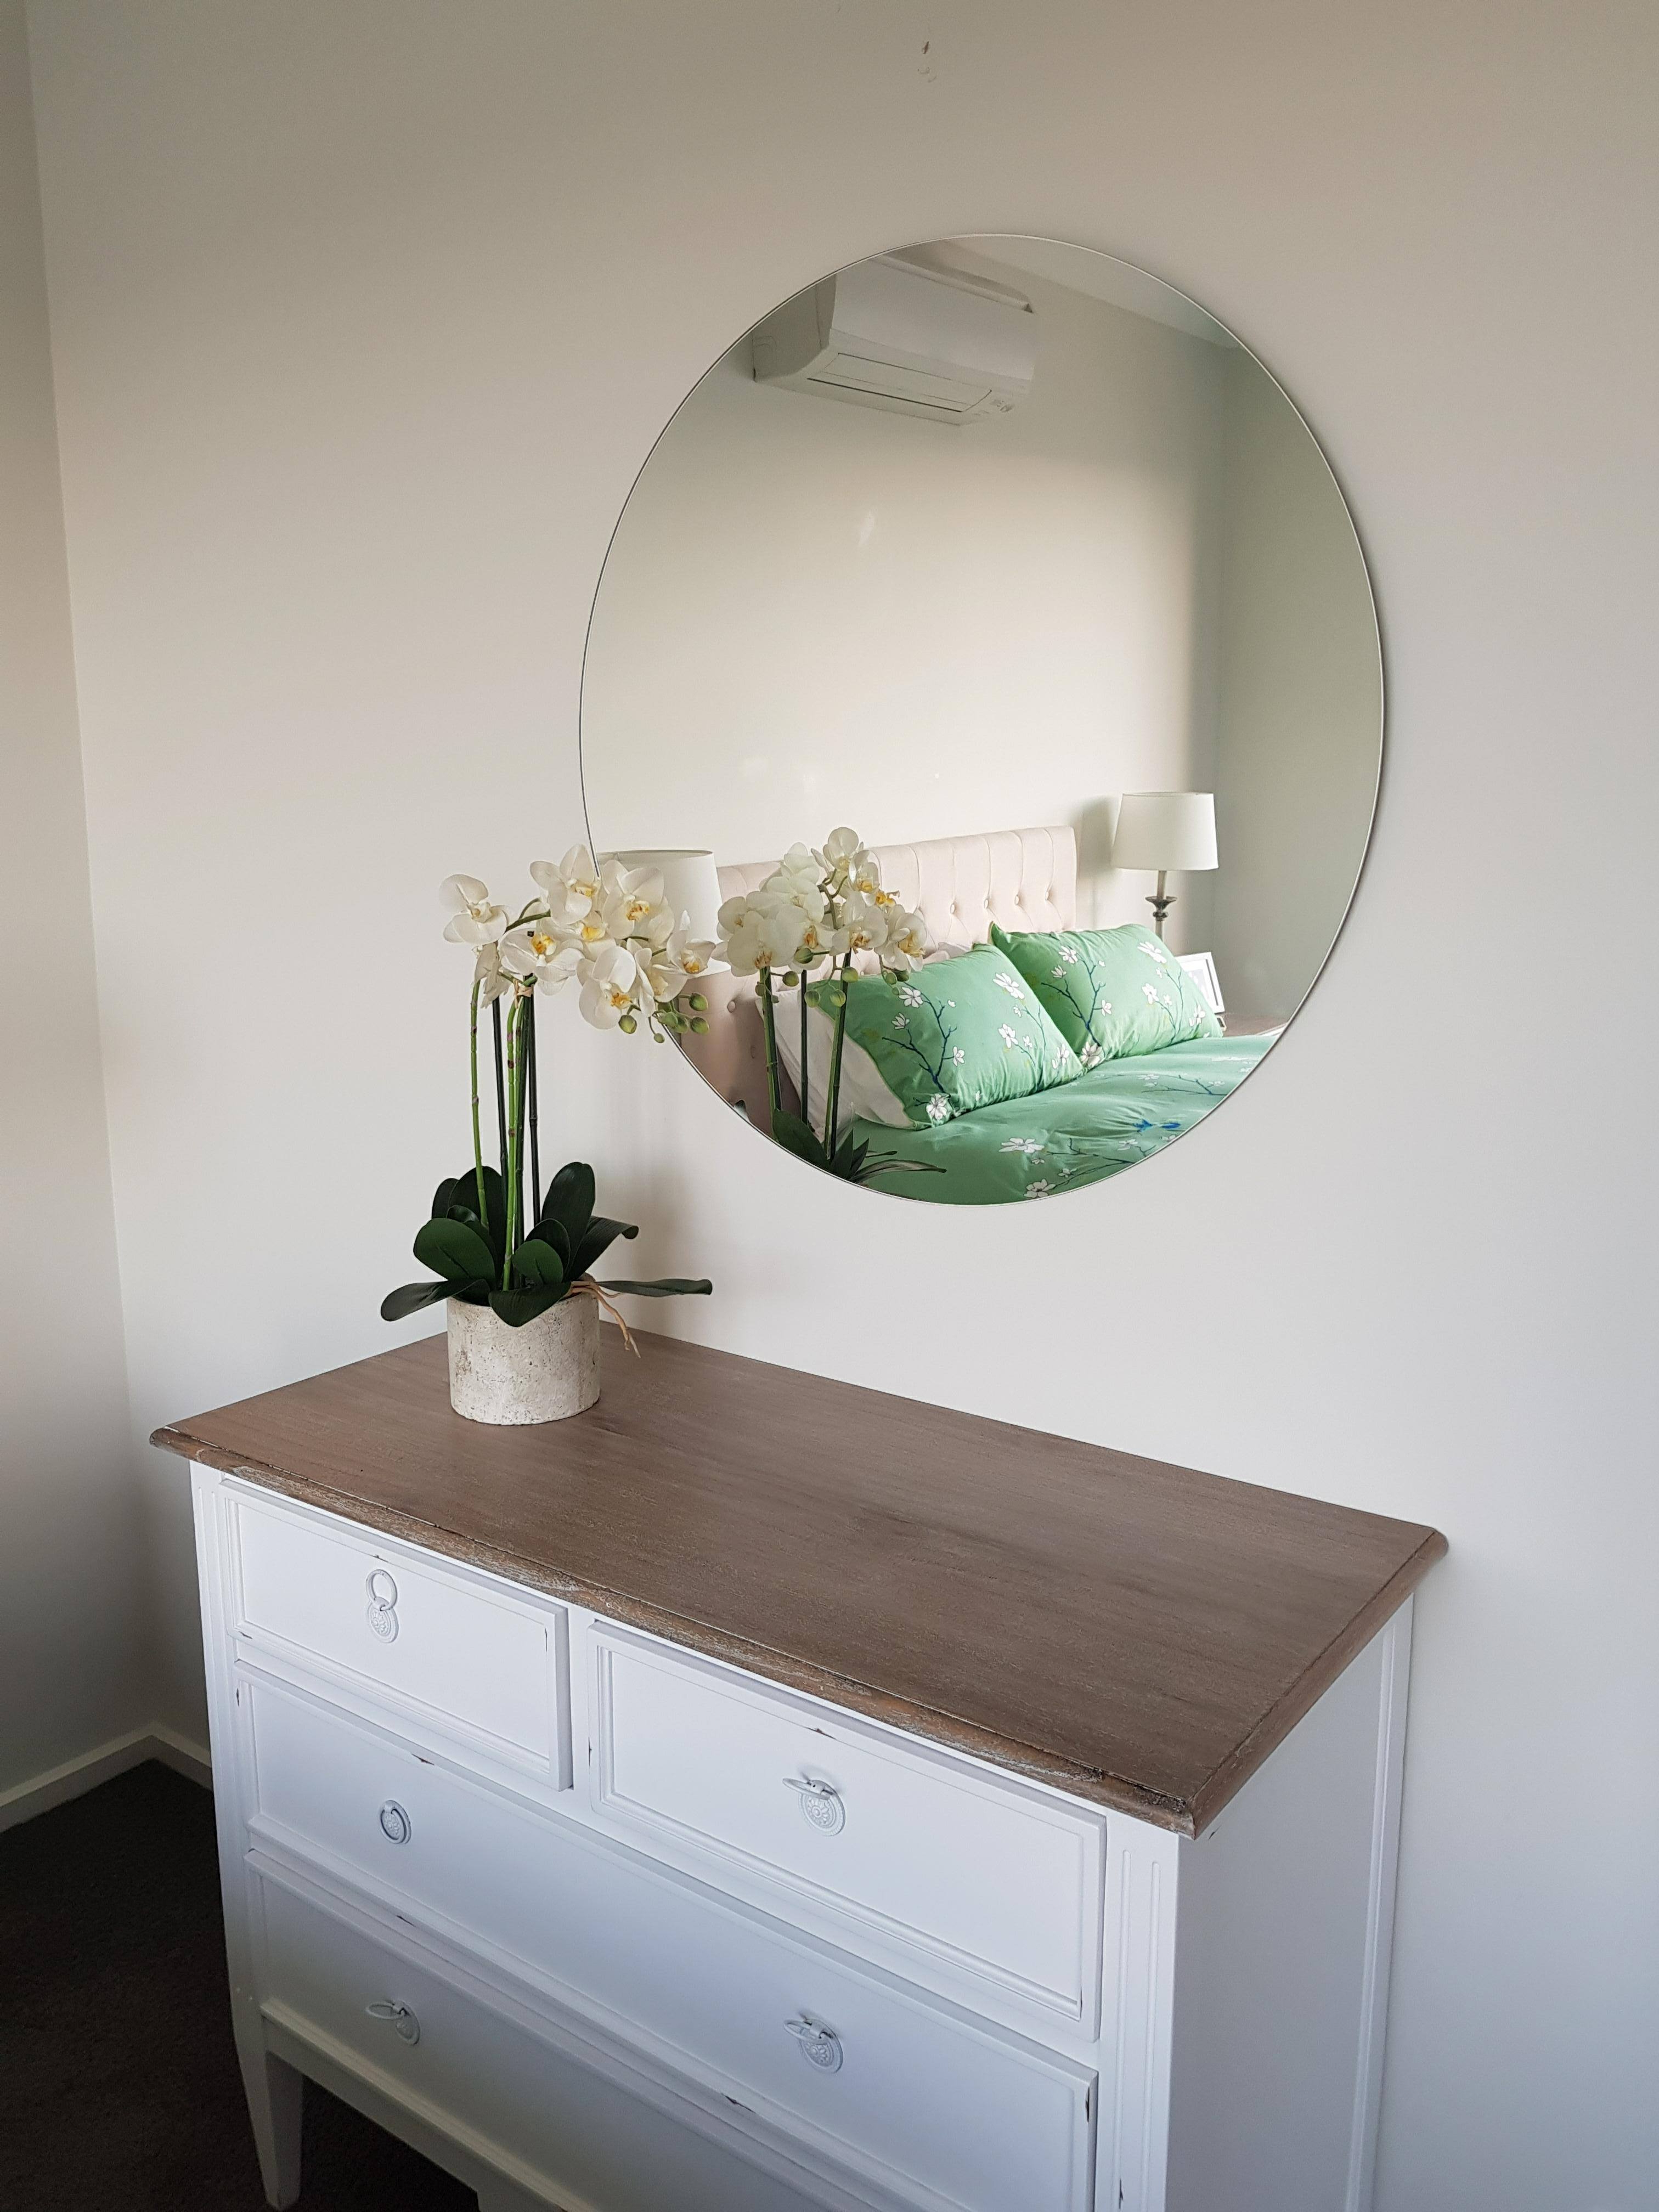 Details About Extra Large Round Frameless Polished Edge Mirror Bathroom  Feature 100Cm & 110Cm With Well Liked Frameless Round Wall Mirrors (View 7 of 20)